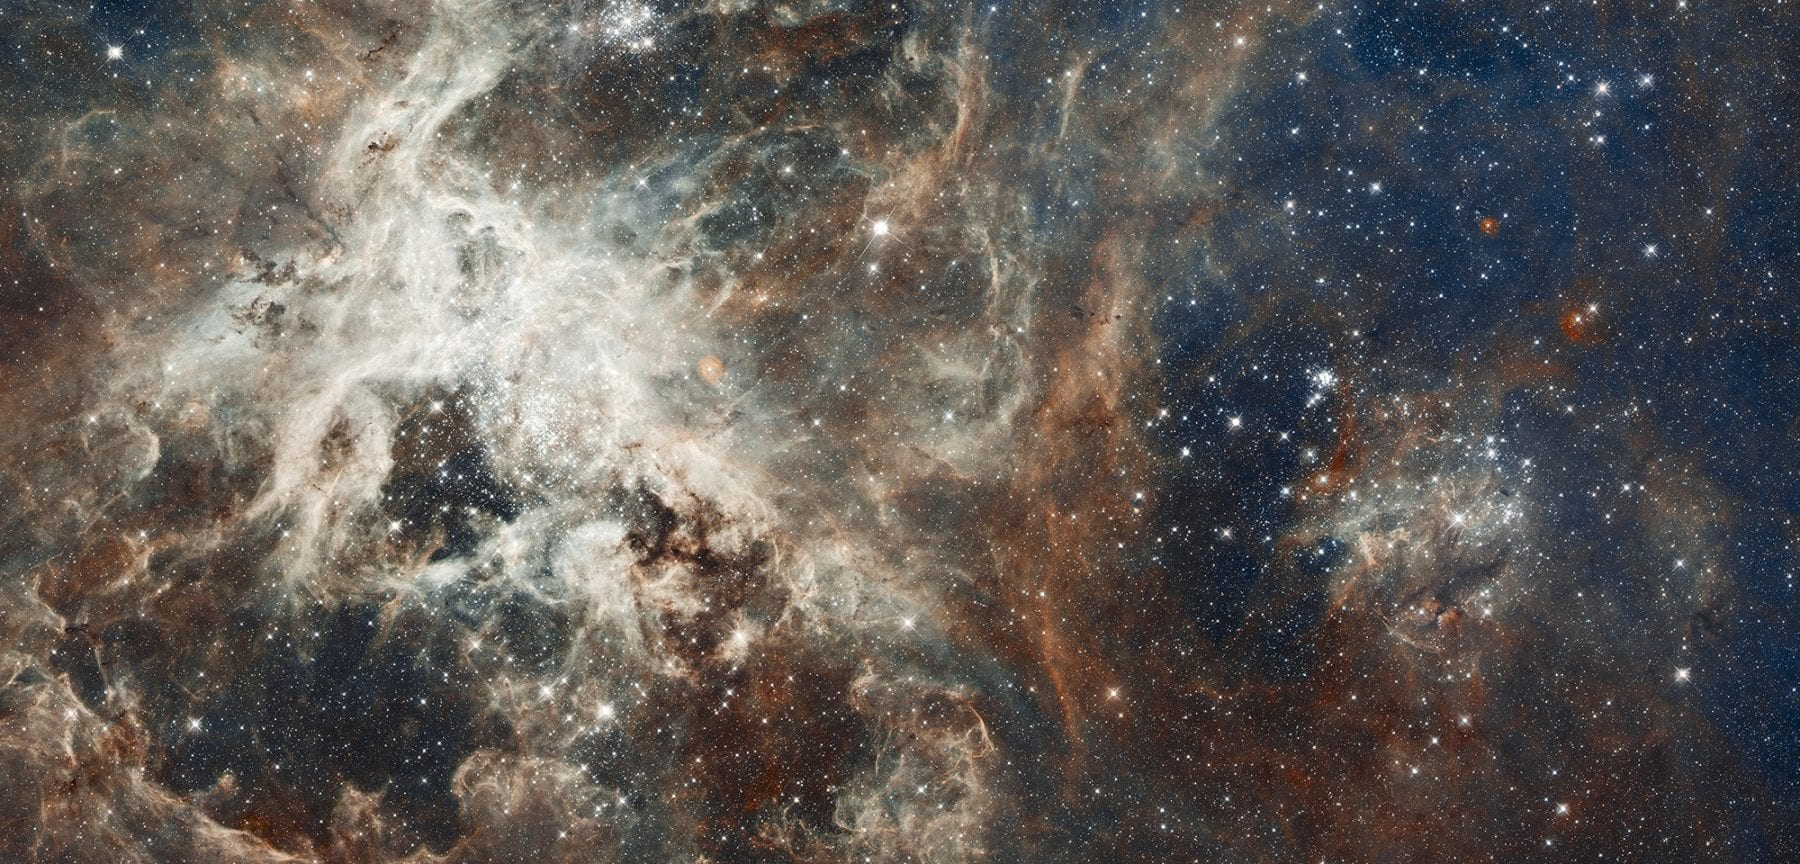 Near-infrared view of 30 Doradus, more commonly known as the Tarantula Nebula. Credit: NASA, ESA, and E. Sabbi (STScI)